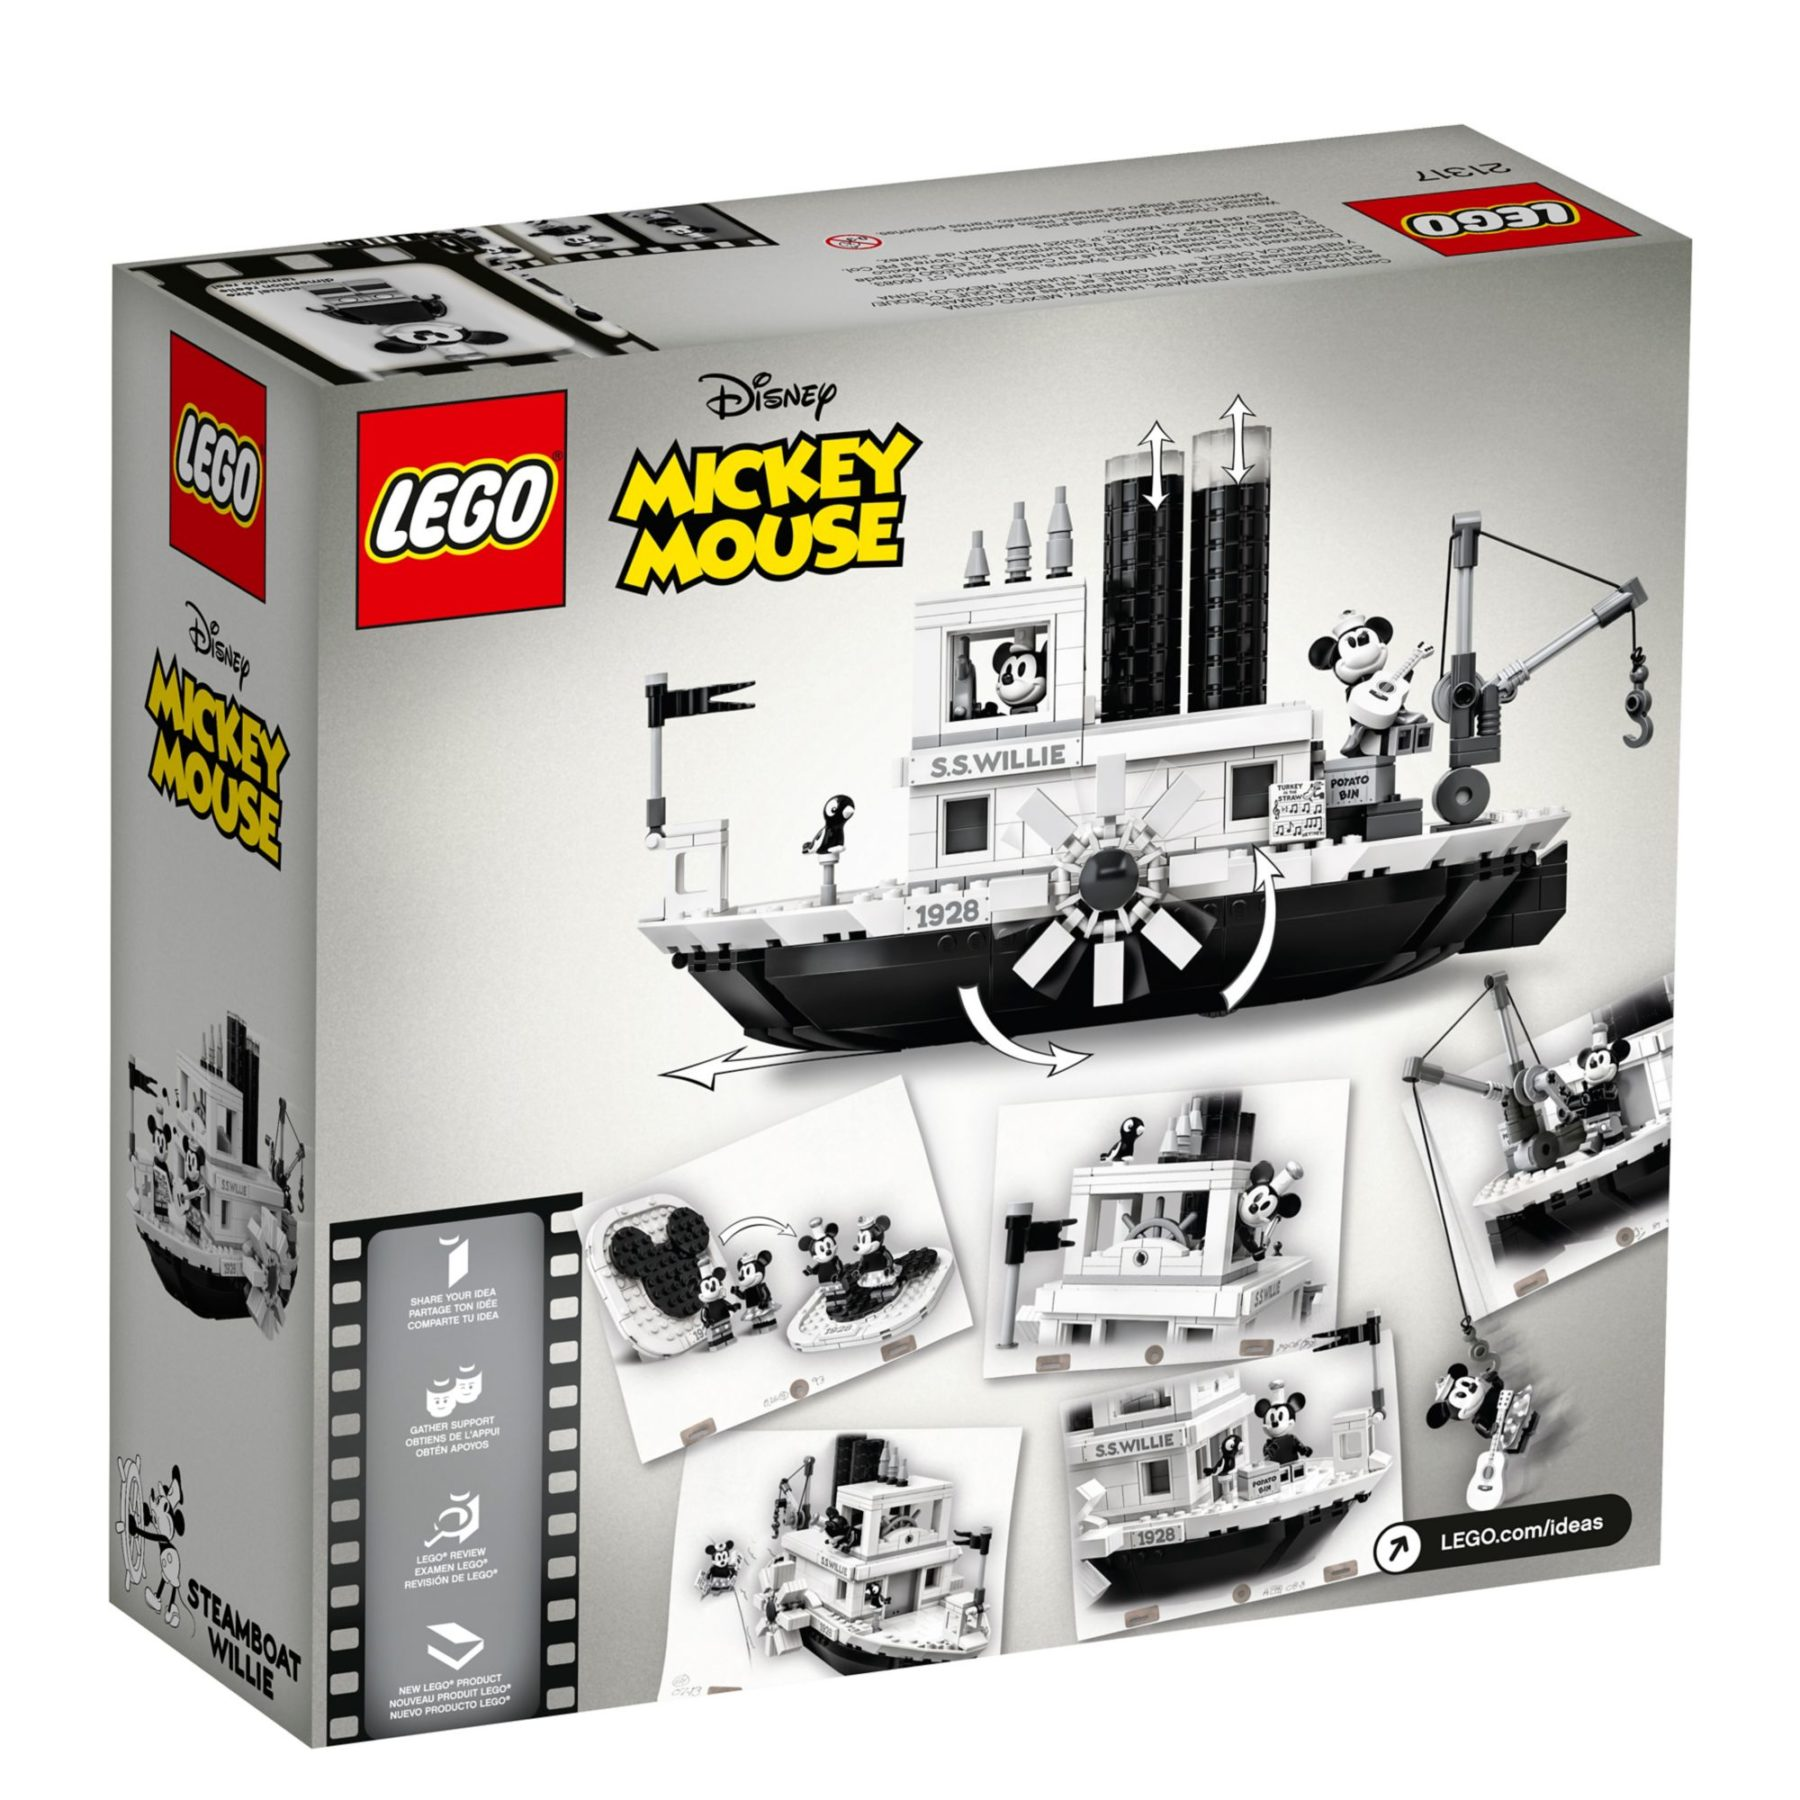 LEGO Ideas 21317 Steamboat Willie Box